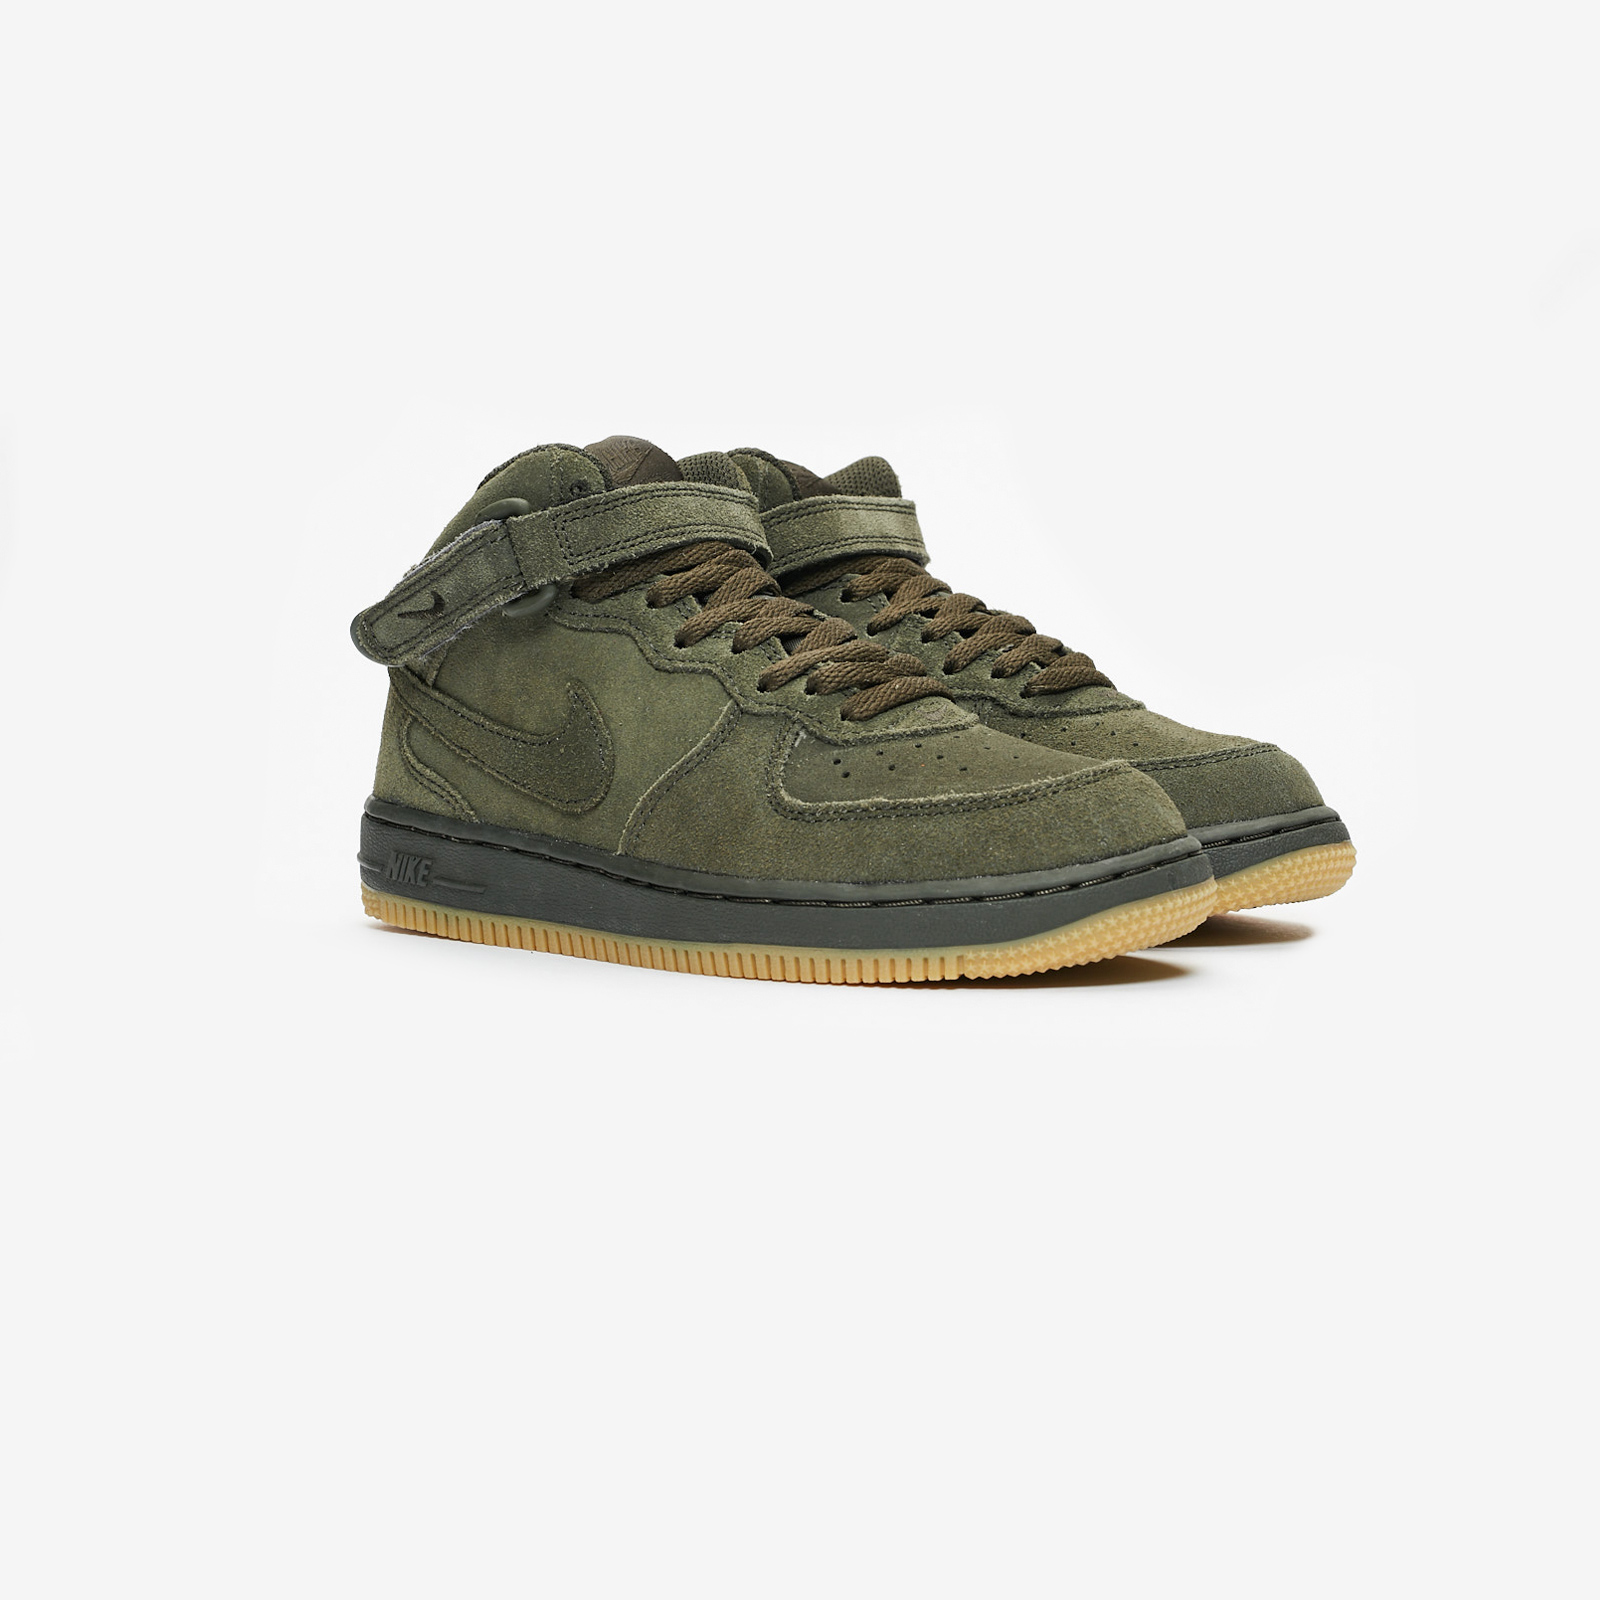 Nike Air Force 1 Mid LV8 (PS) - 859337